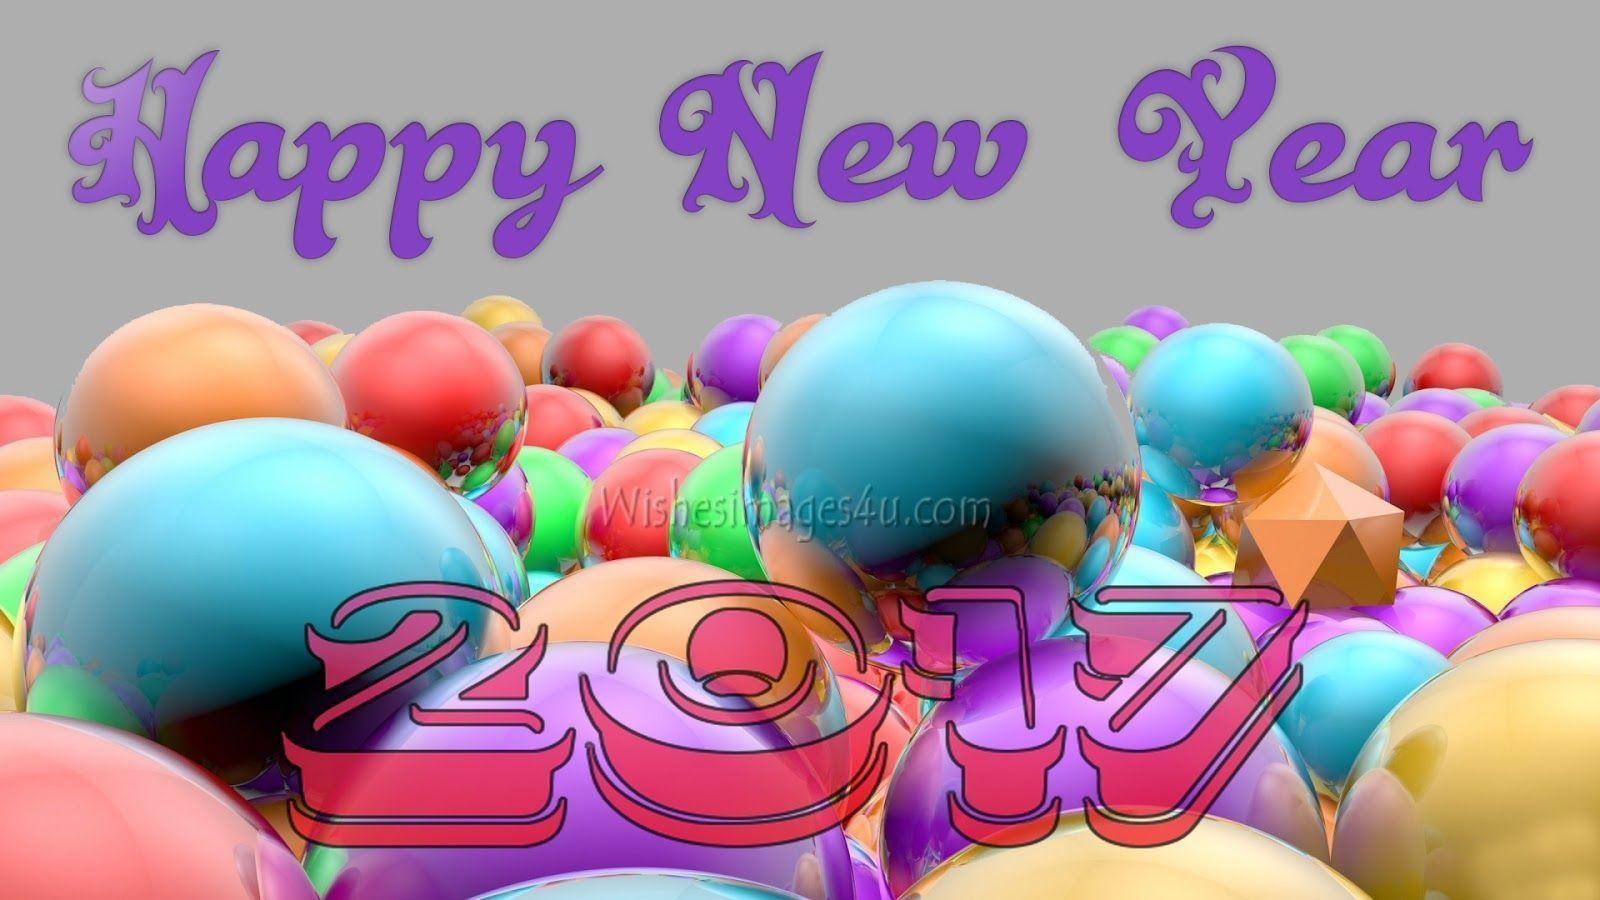 Happy New Year 2017 3D Full HD Images Download